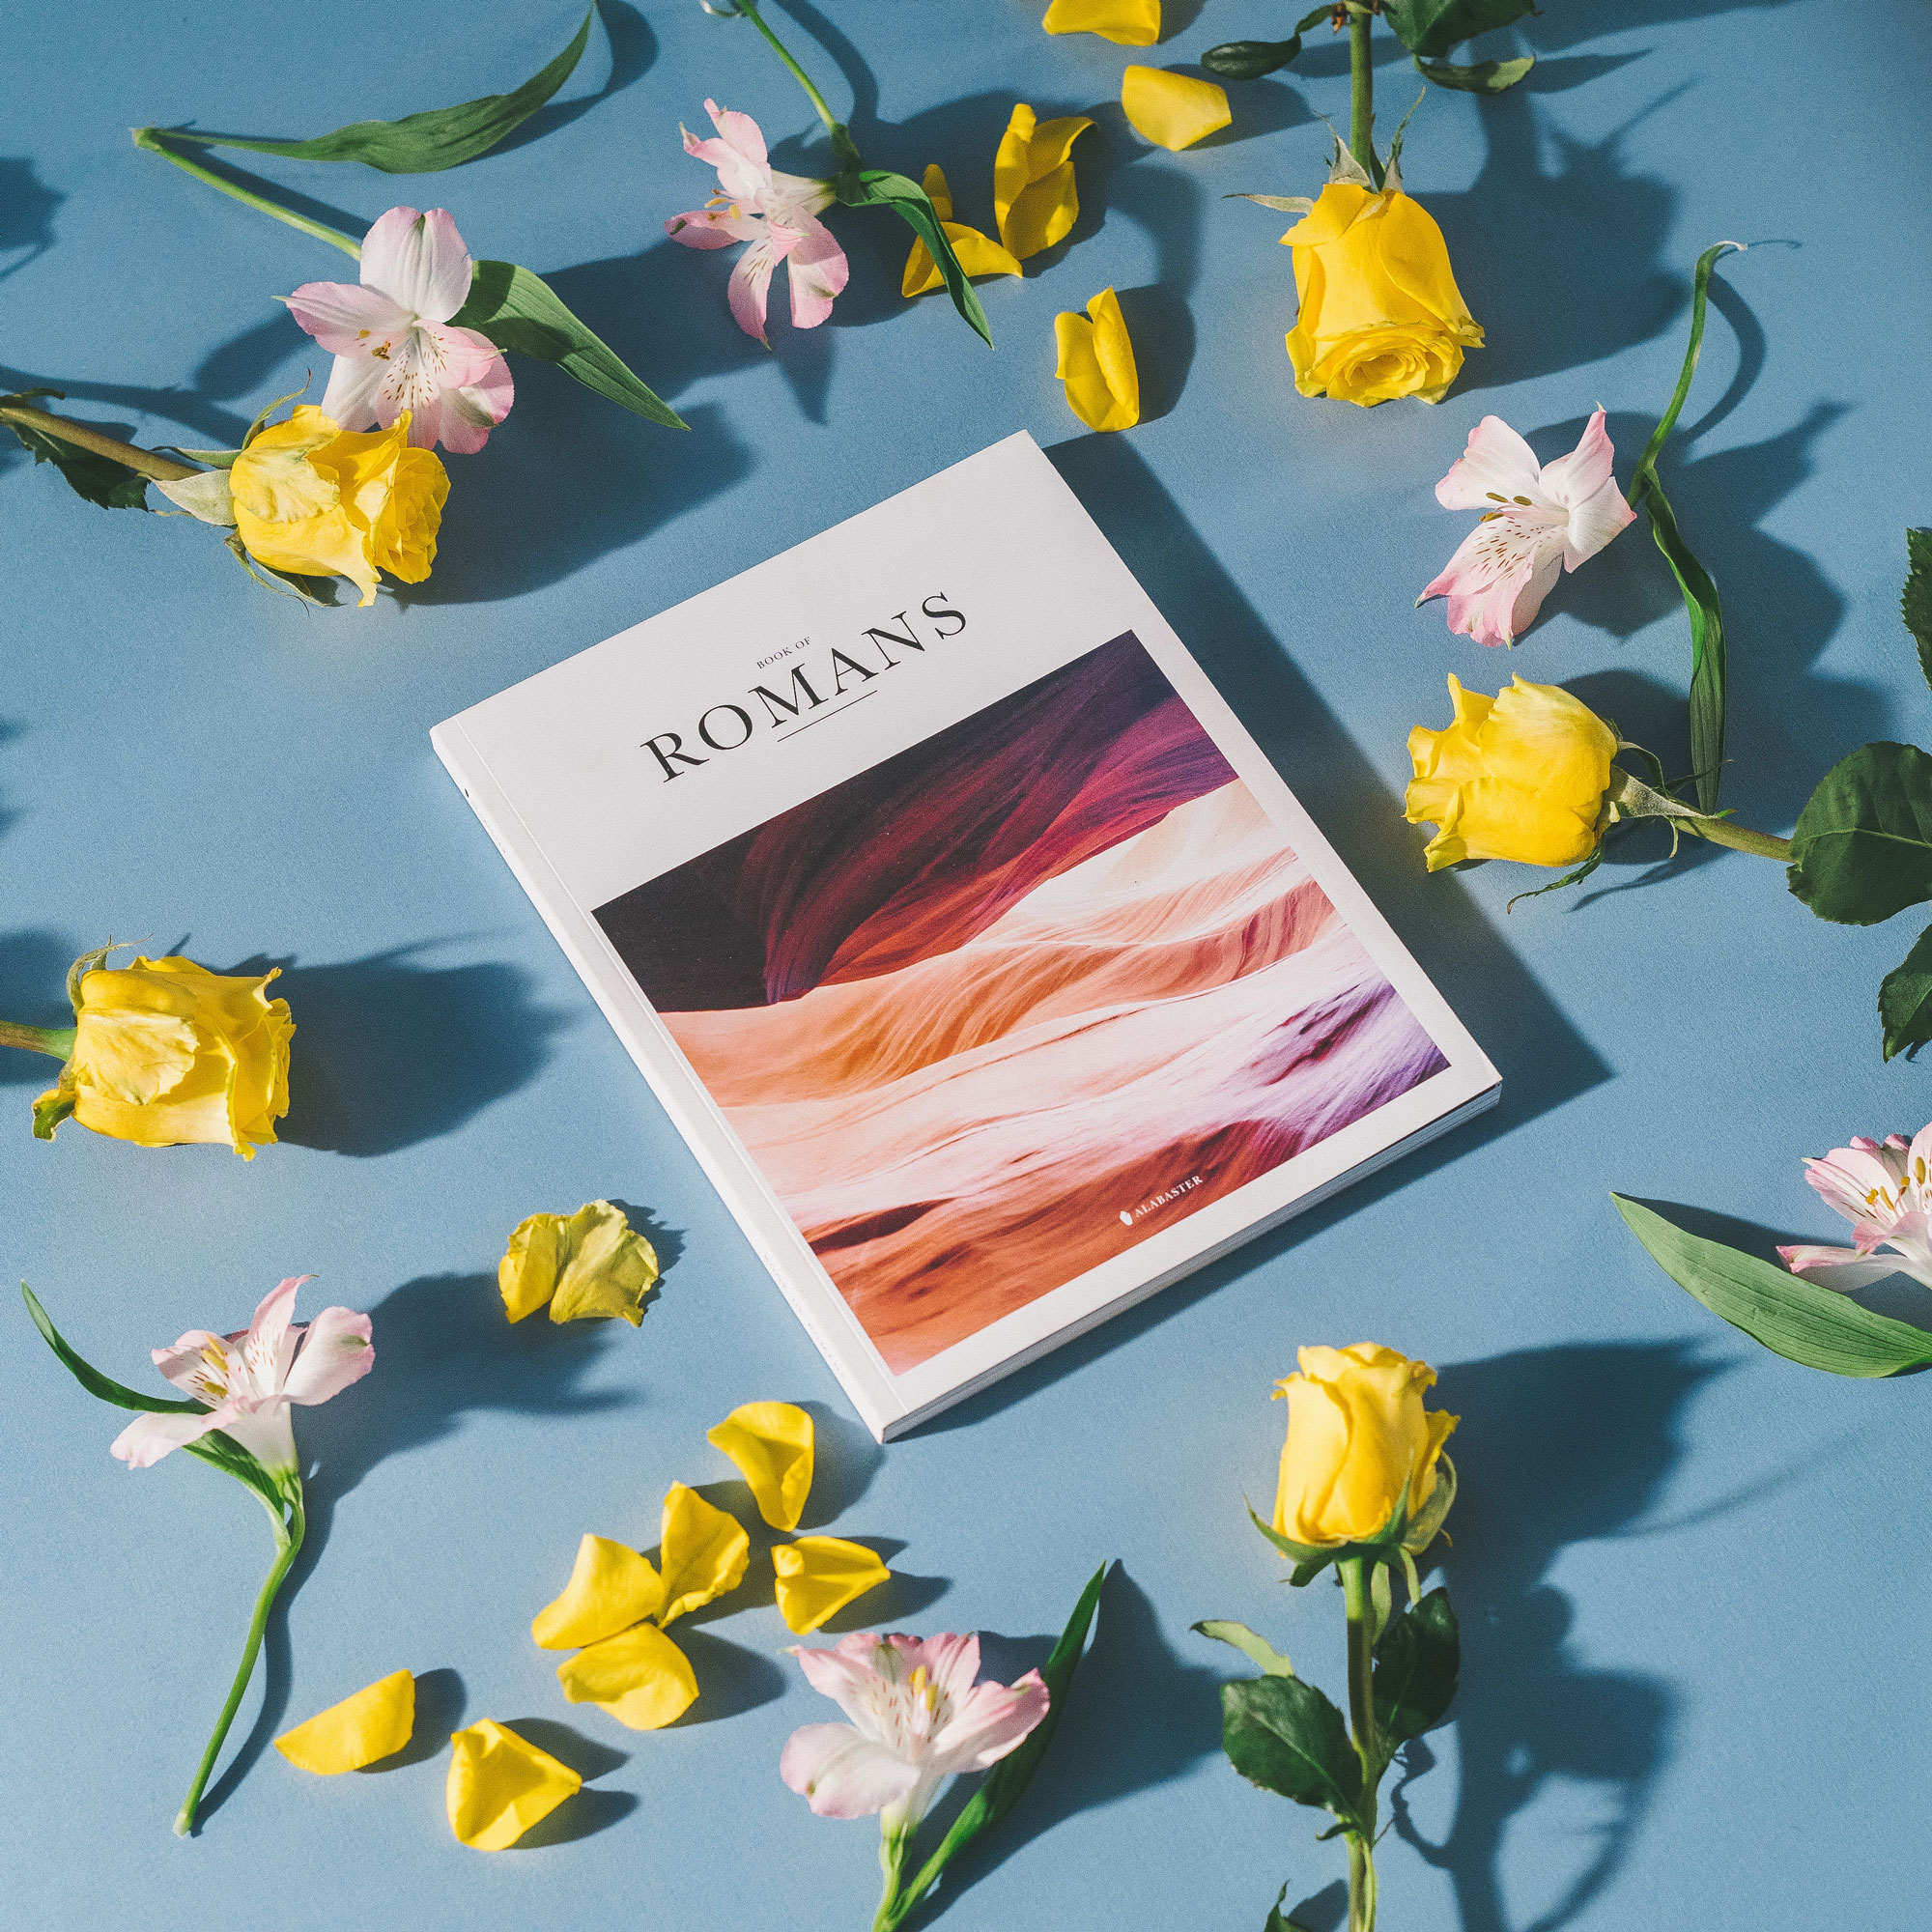 Free Magazine Among Flowers Mockup